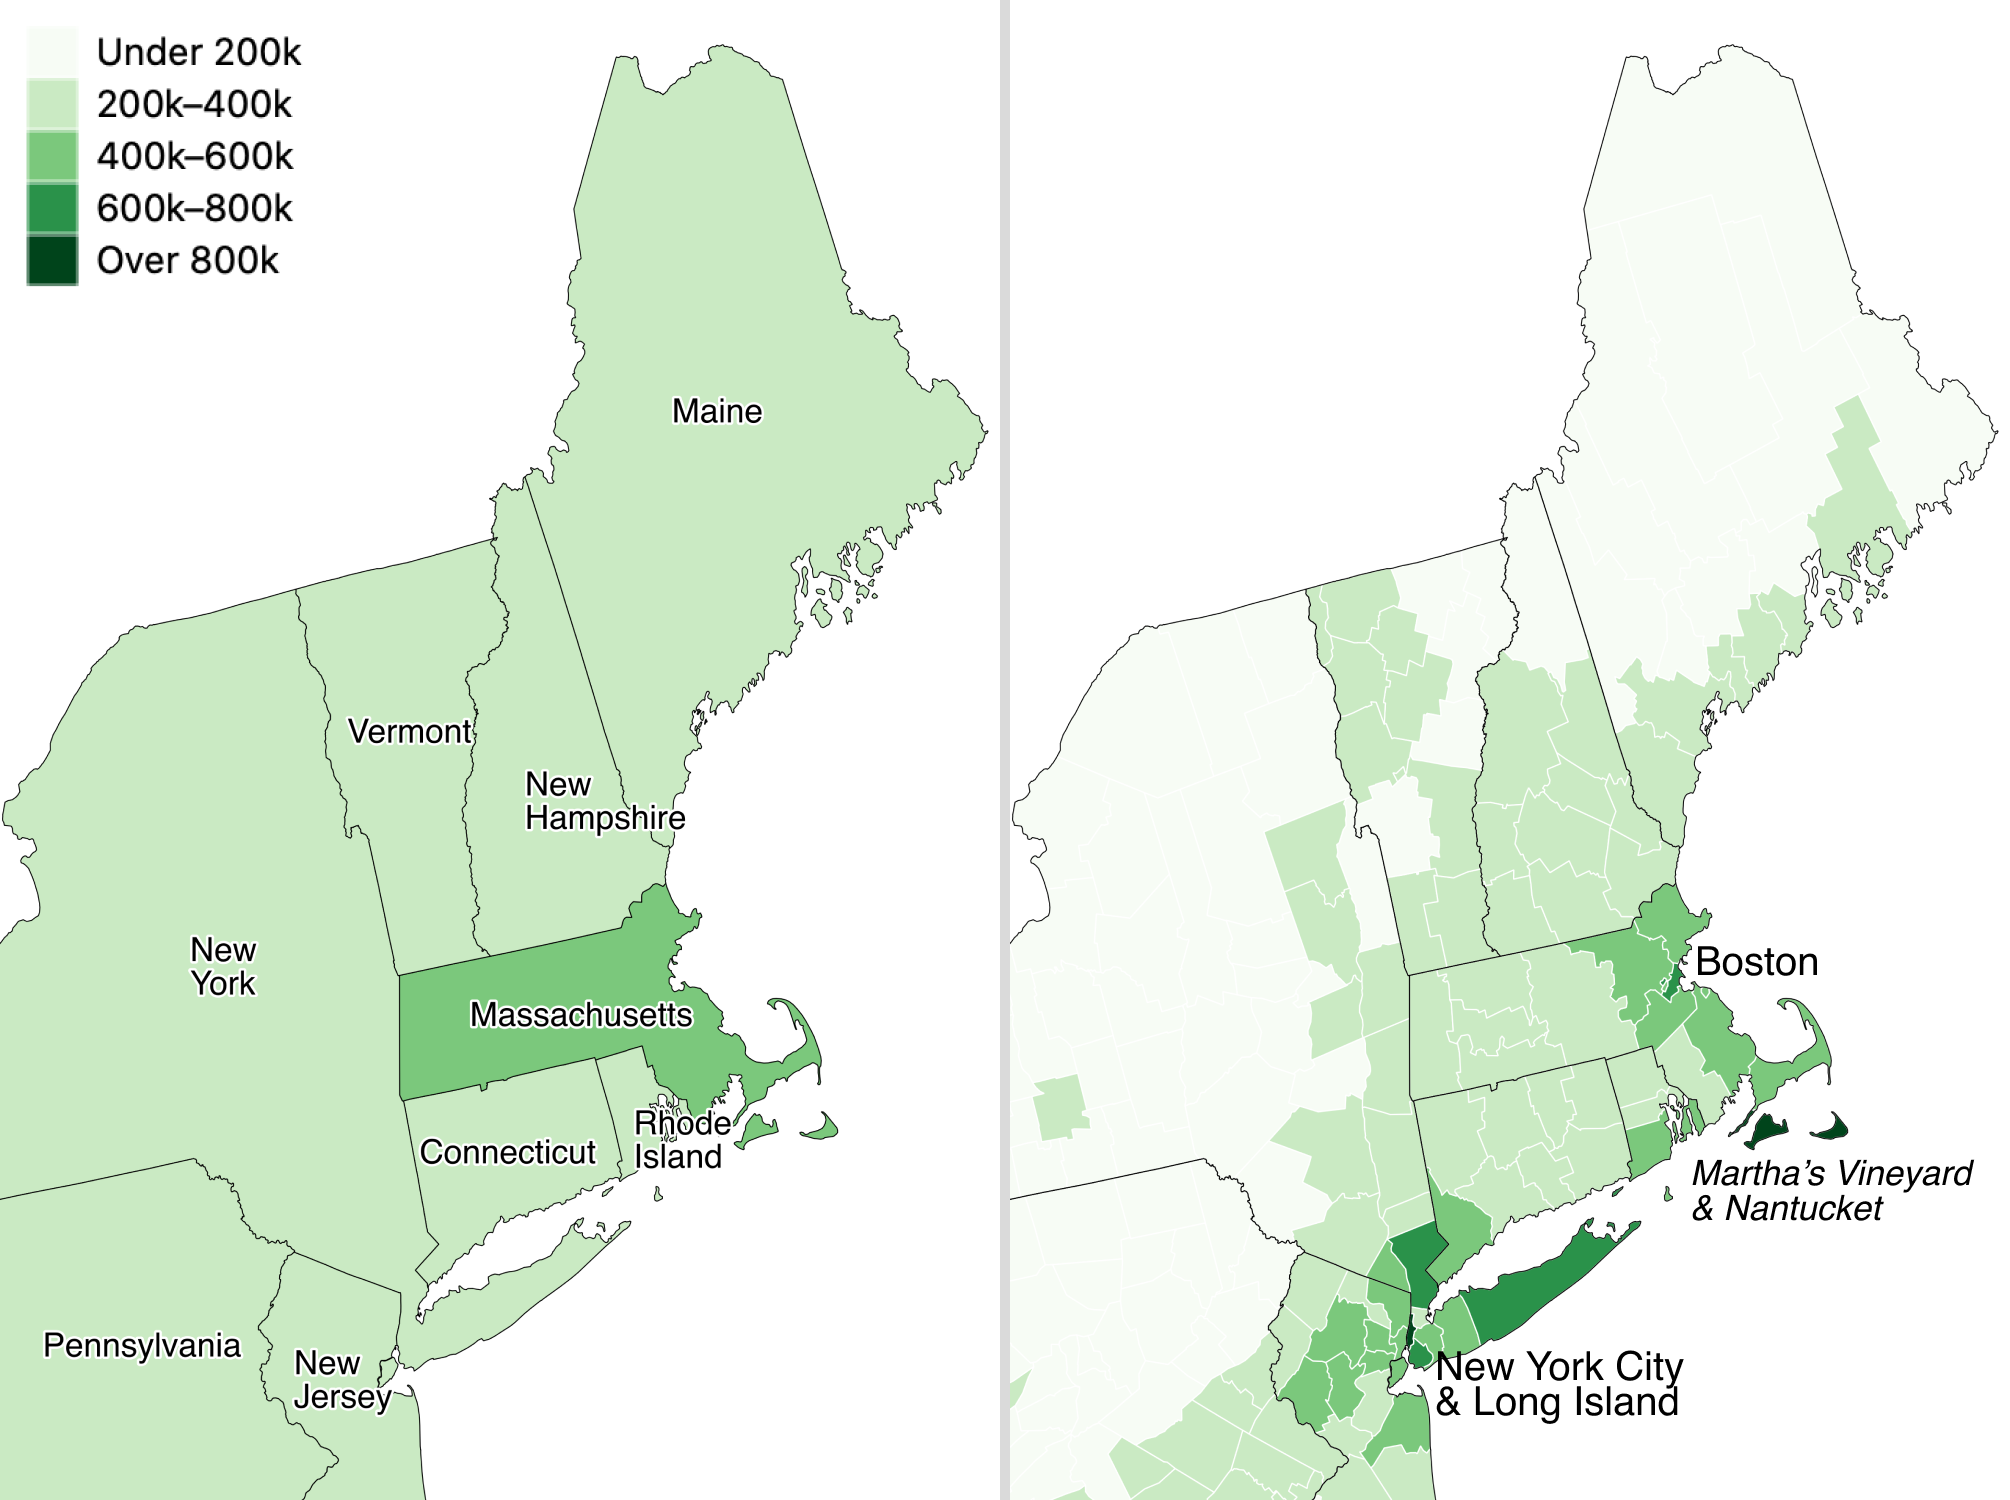 Zillow typical home values in September 2020 shown at the larger state level (left) versus the smaller county level (right).